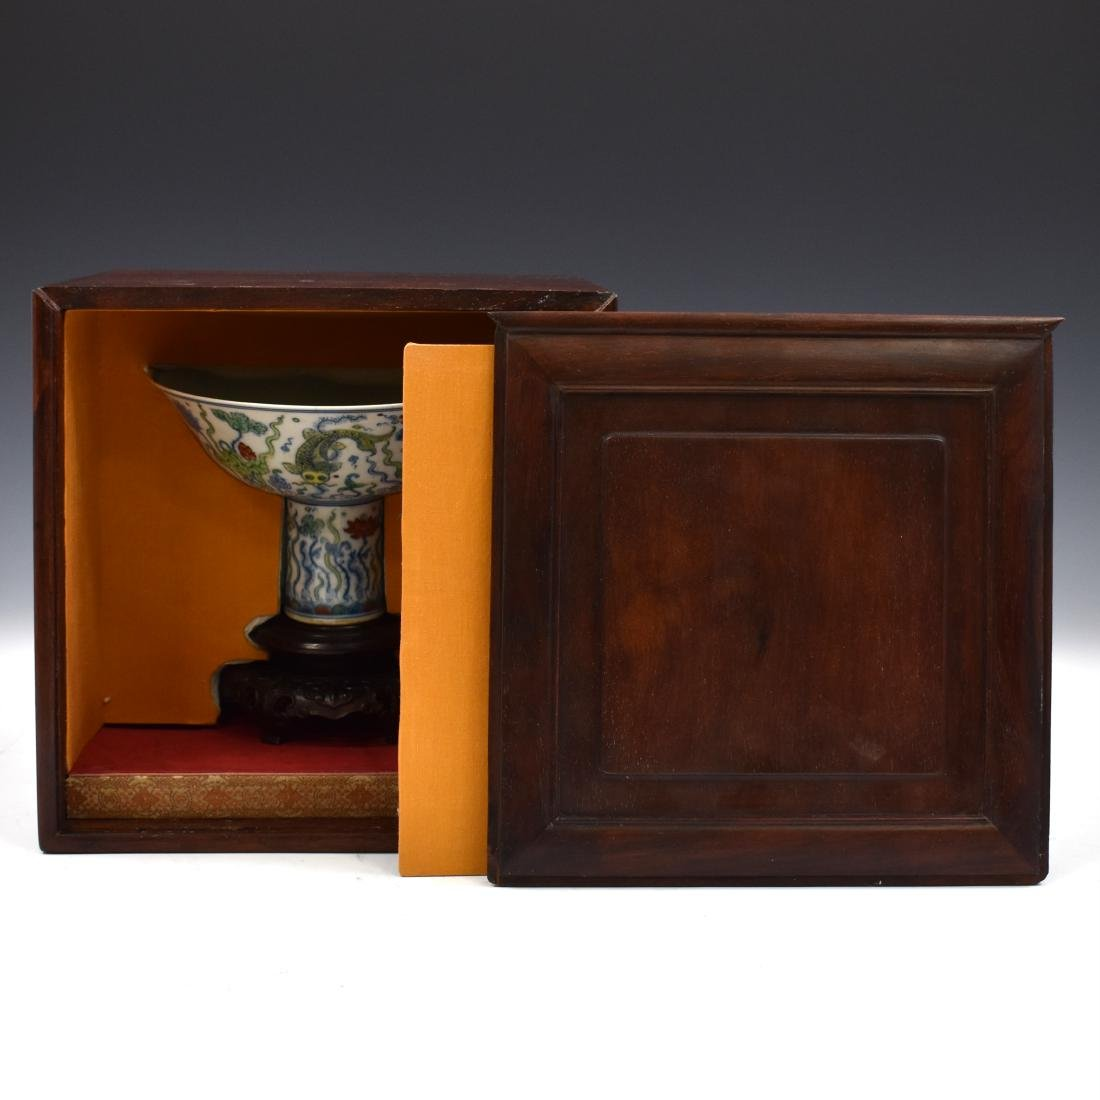 MING DOUCAI HIGH STEM BOWL IN PROTECTIVE BOX - 2